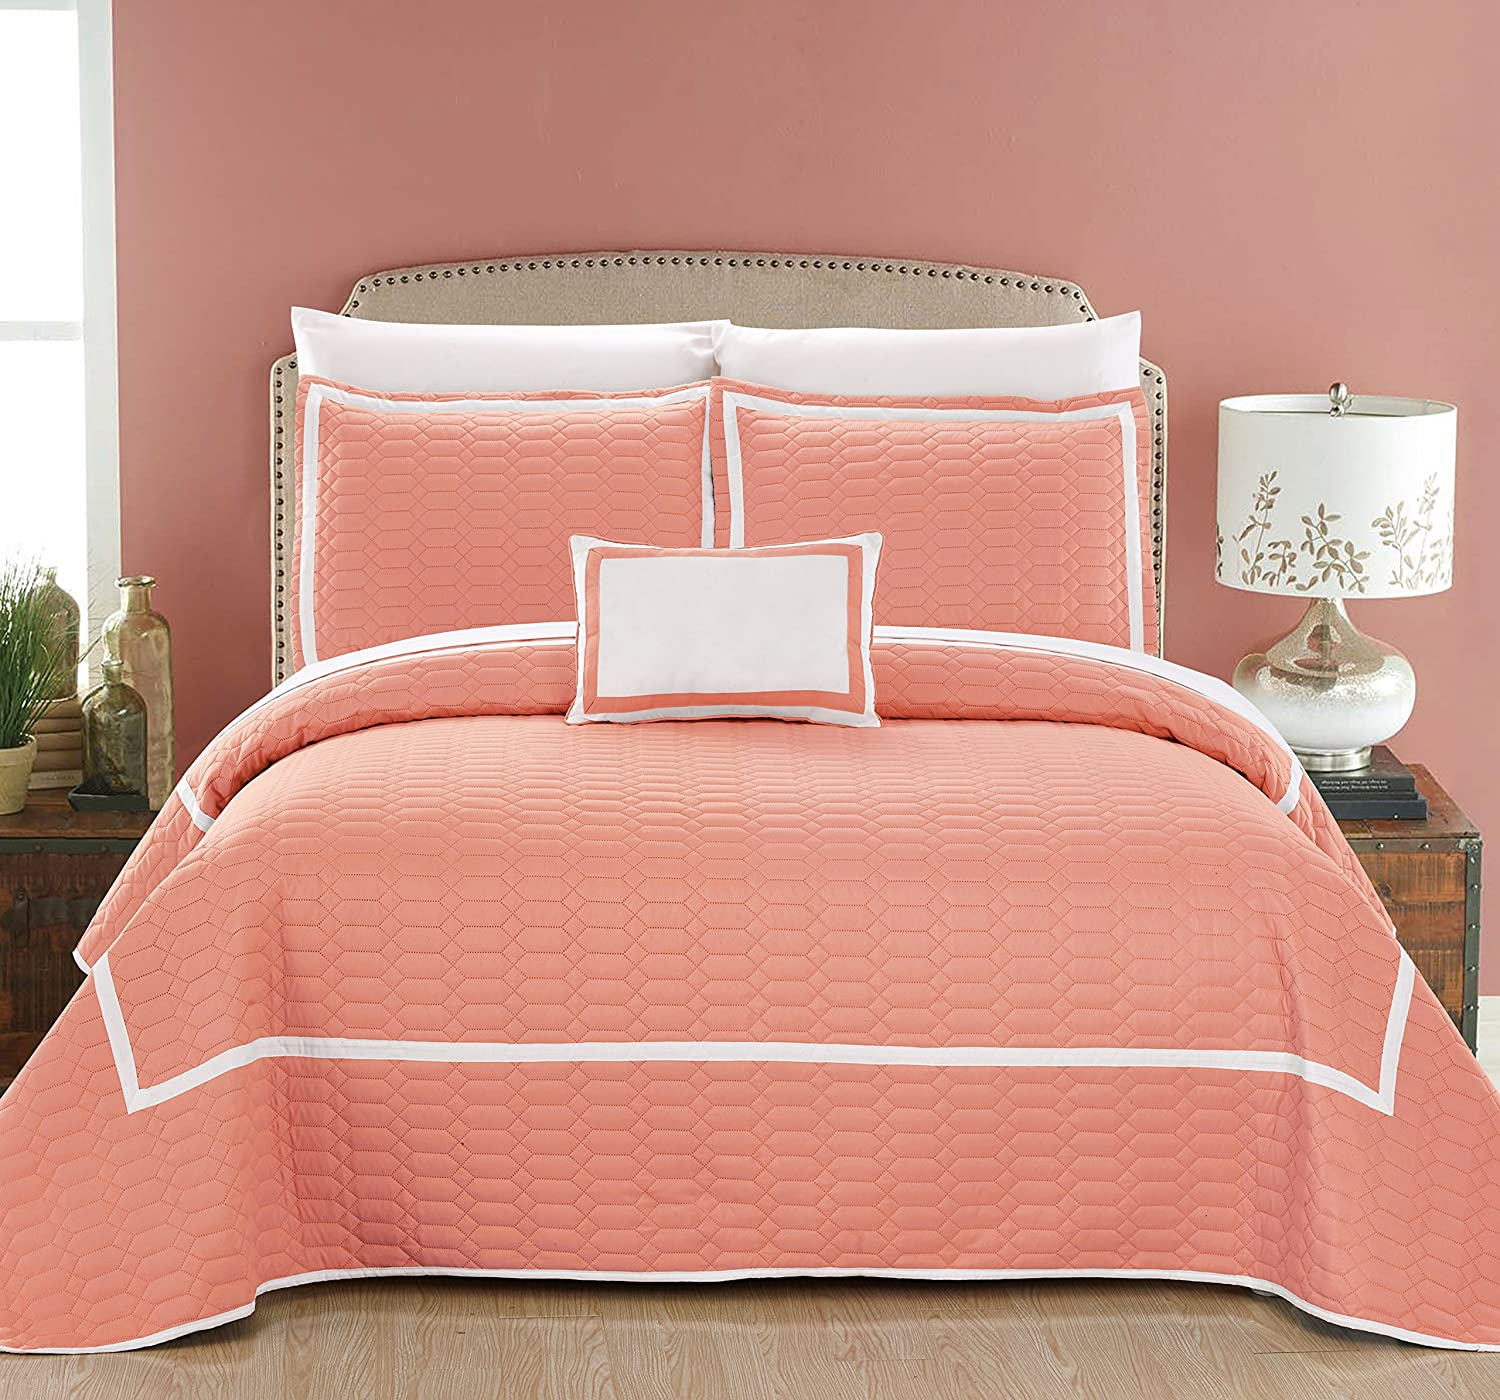 Chic Home 8 Piece Mesa Hotel Collection 2 Tone Banded Geometrical Quilt Set